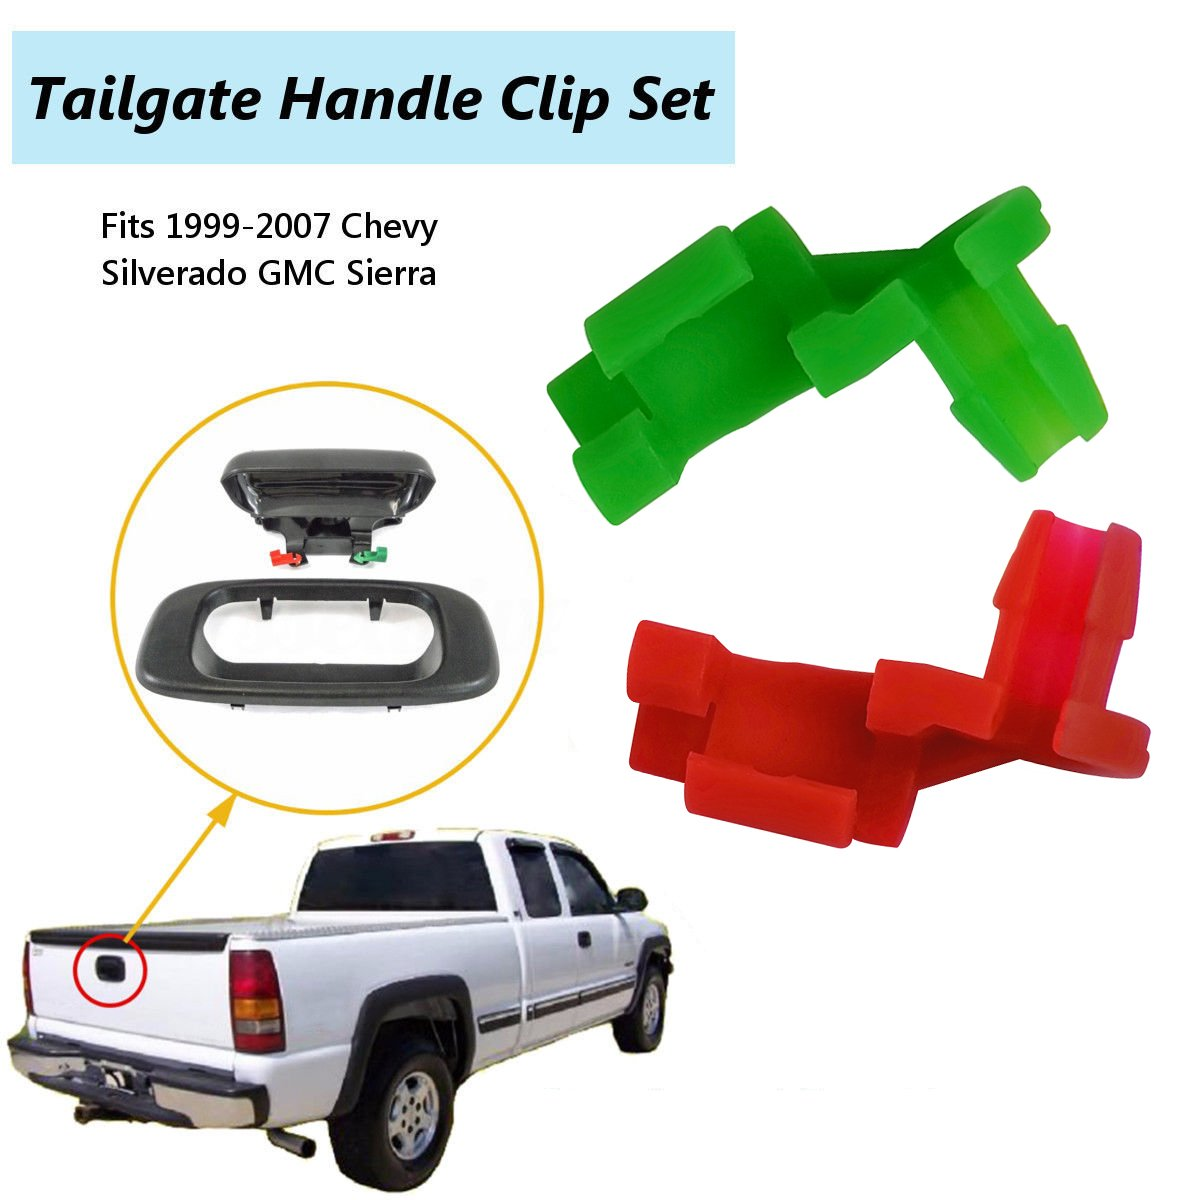 amazon com 1999 2007 chevy silverado gmc sierra tailgate handle rodamazon com 1999 2007 chevy silverado gmc sierra tailgate handle rod clip left \u0026 right rod retainer clips, oem handle replacement 5 pairs 88981030,